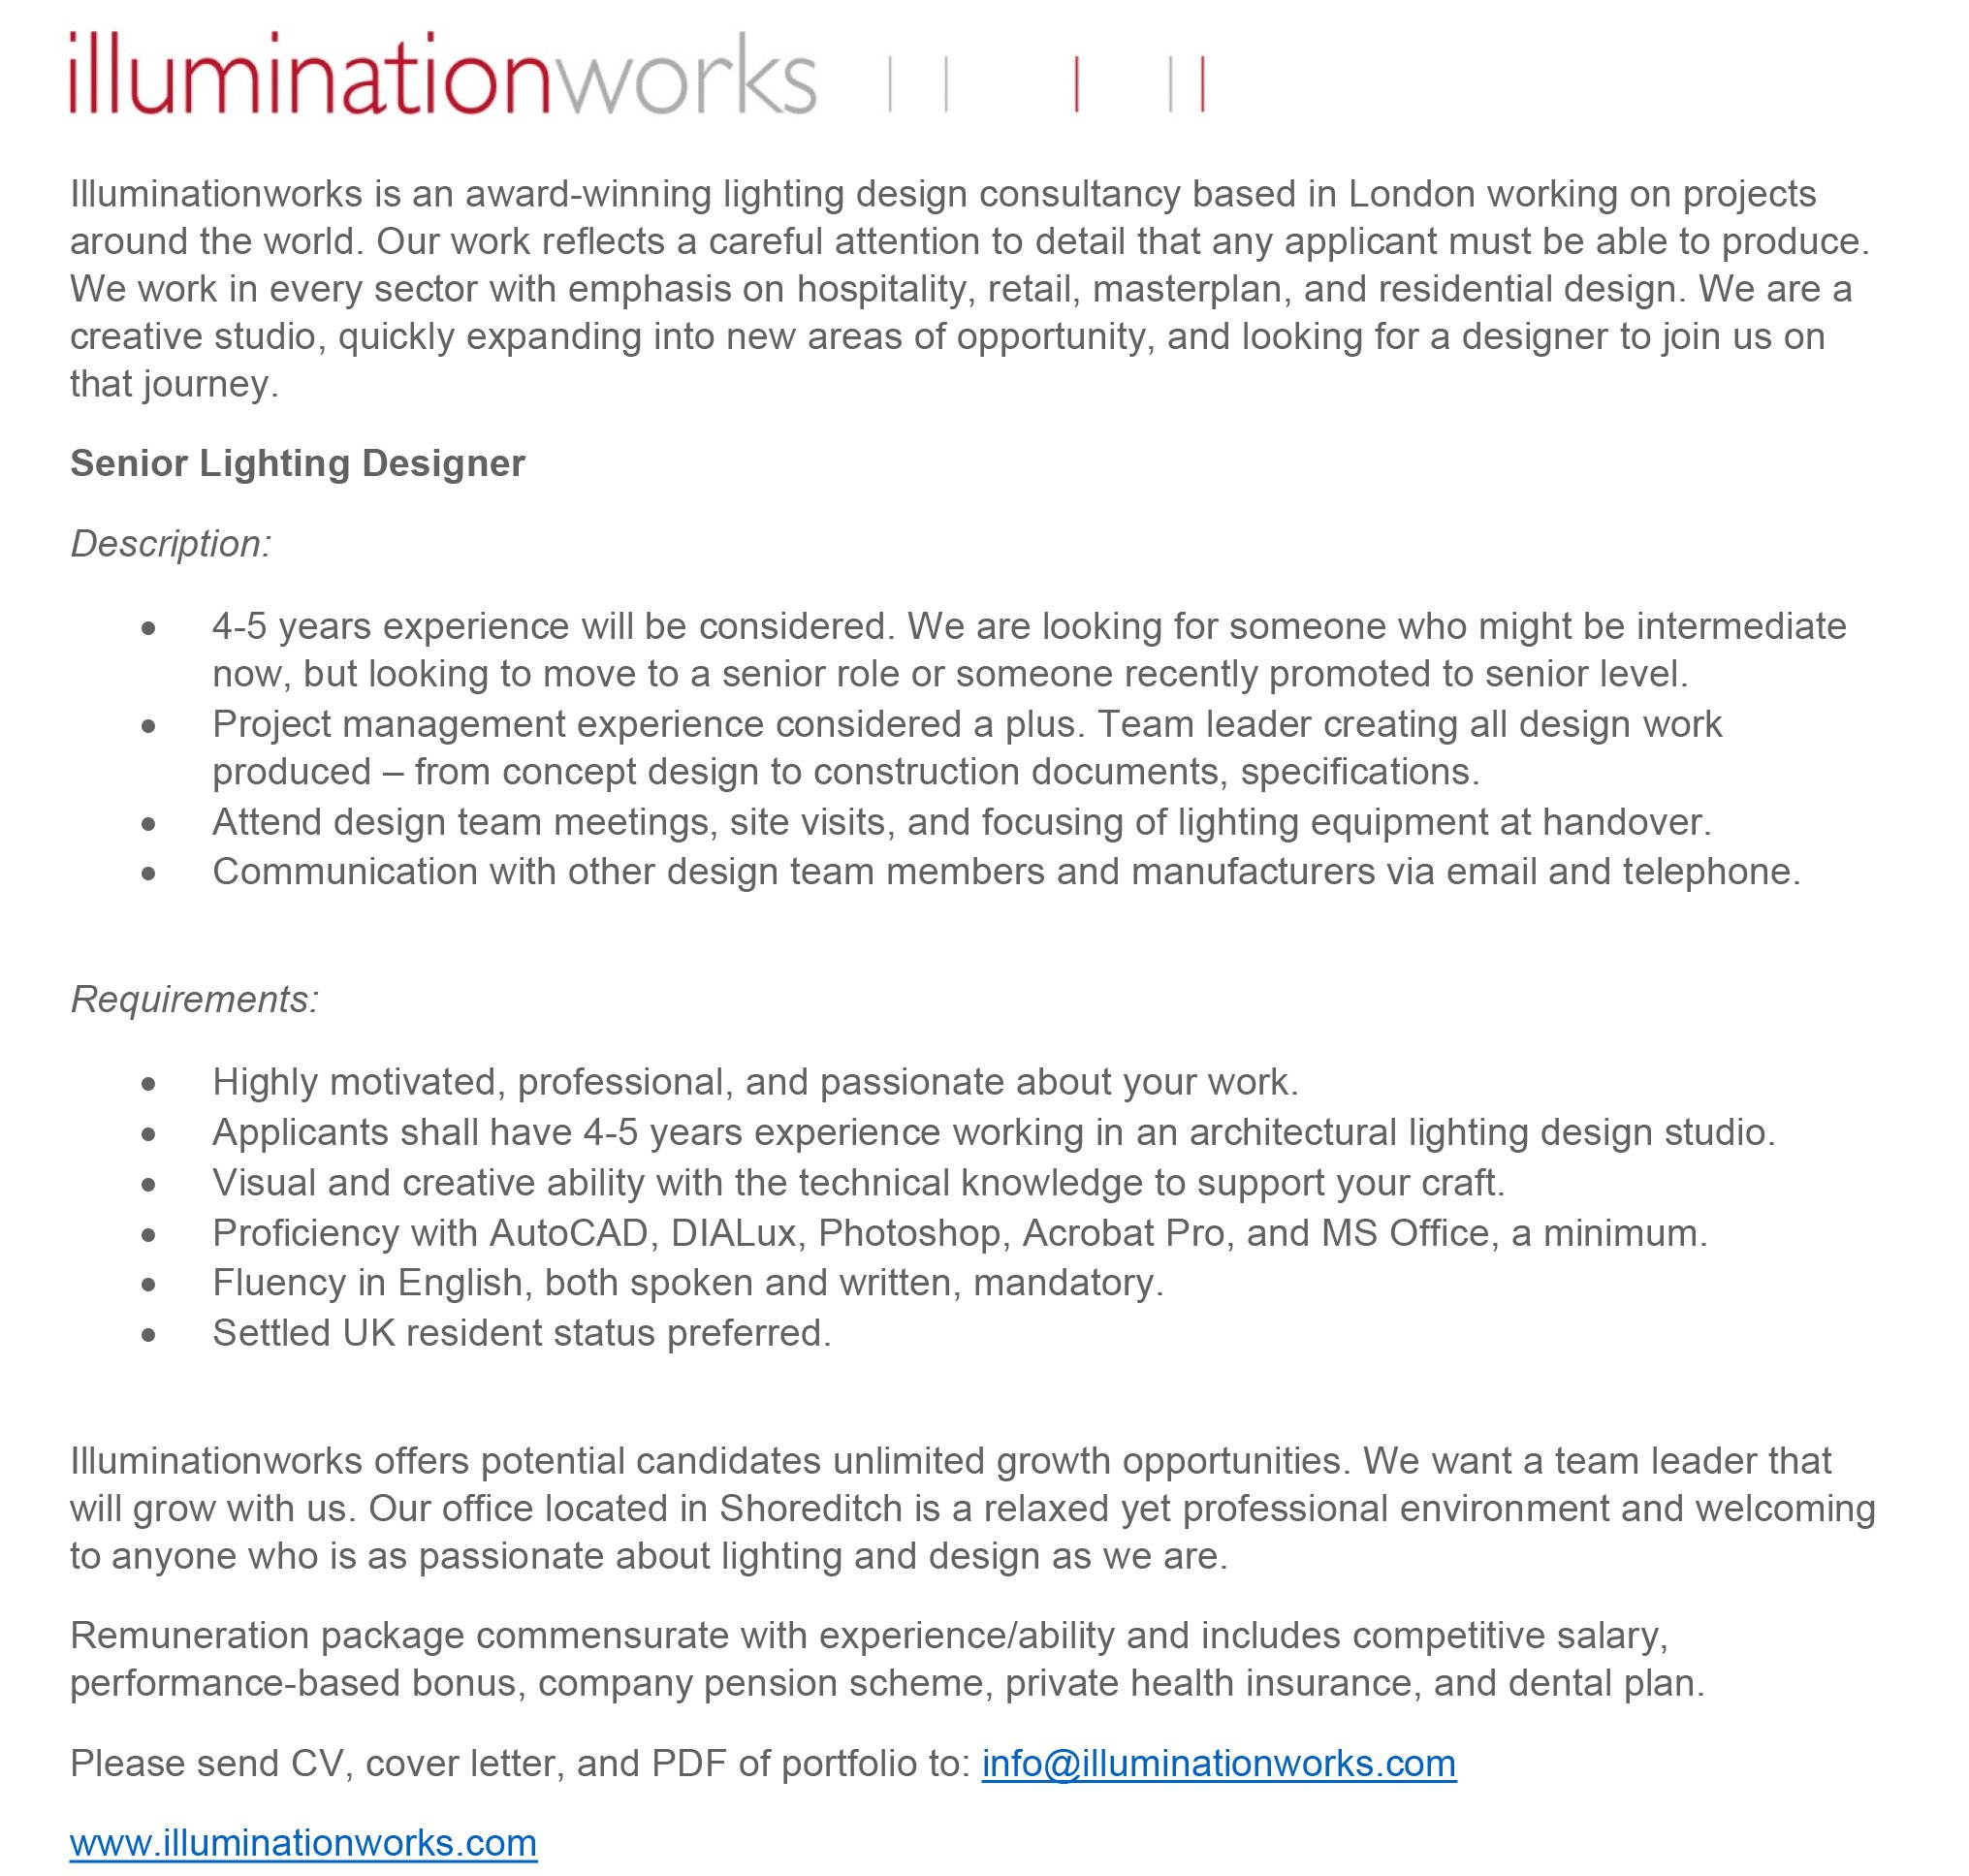 Illuminationworks On Twitter We Are Hiring If You Have 4 5 Years Experience Working As An Architectural Lighting Designer And Interested In Joining Our Team Please Send Your Cv Cover Letter And Pdf